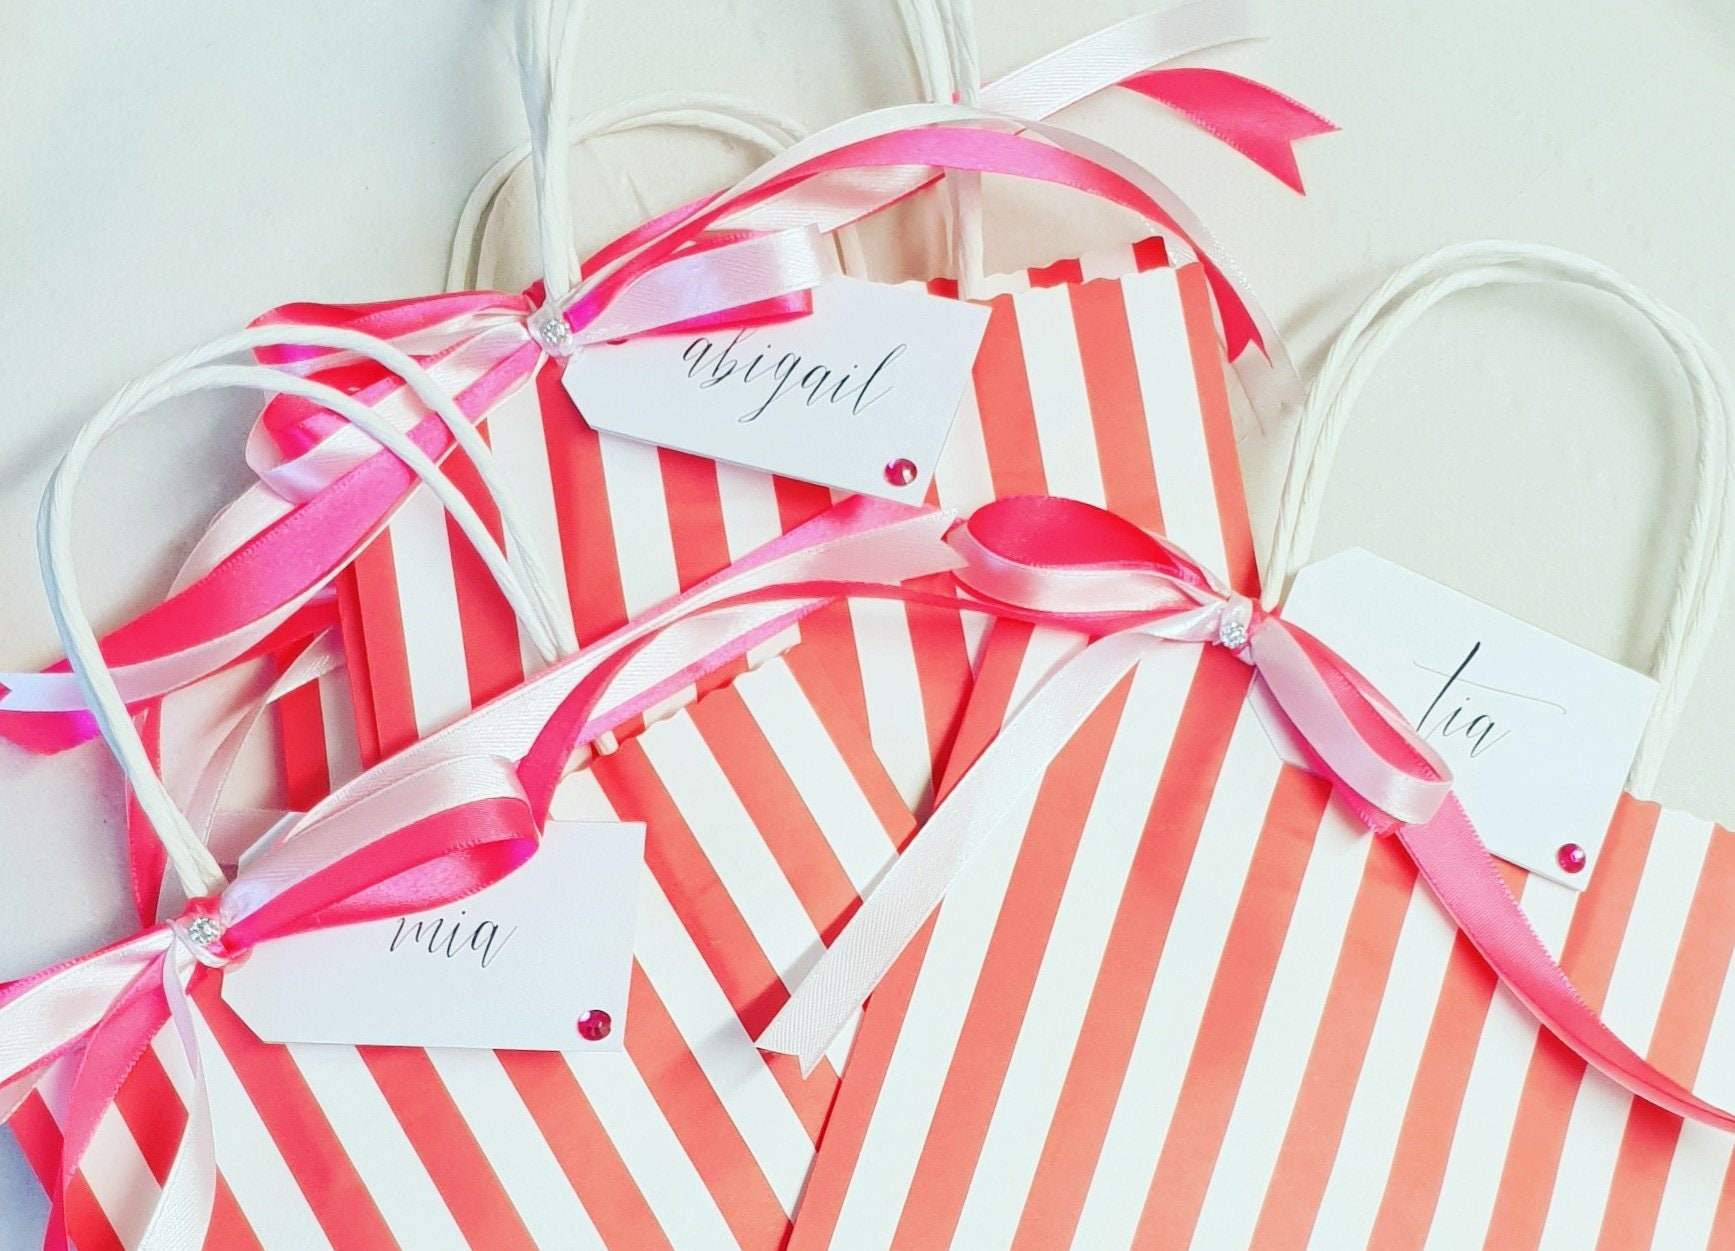 451f1191515b Childrens Candy Striped Party Bags Favour Bags with tissue paper ...